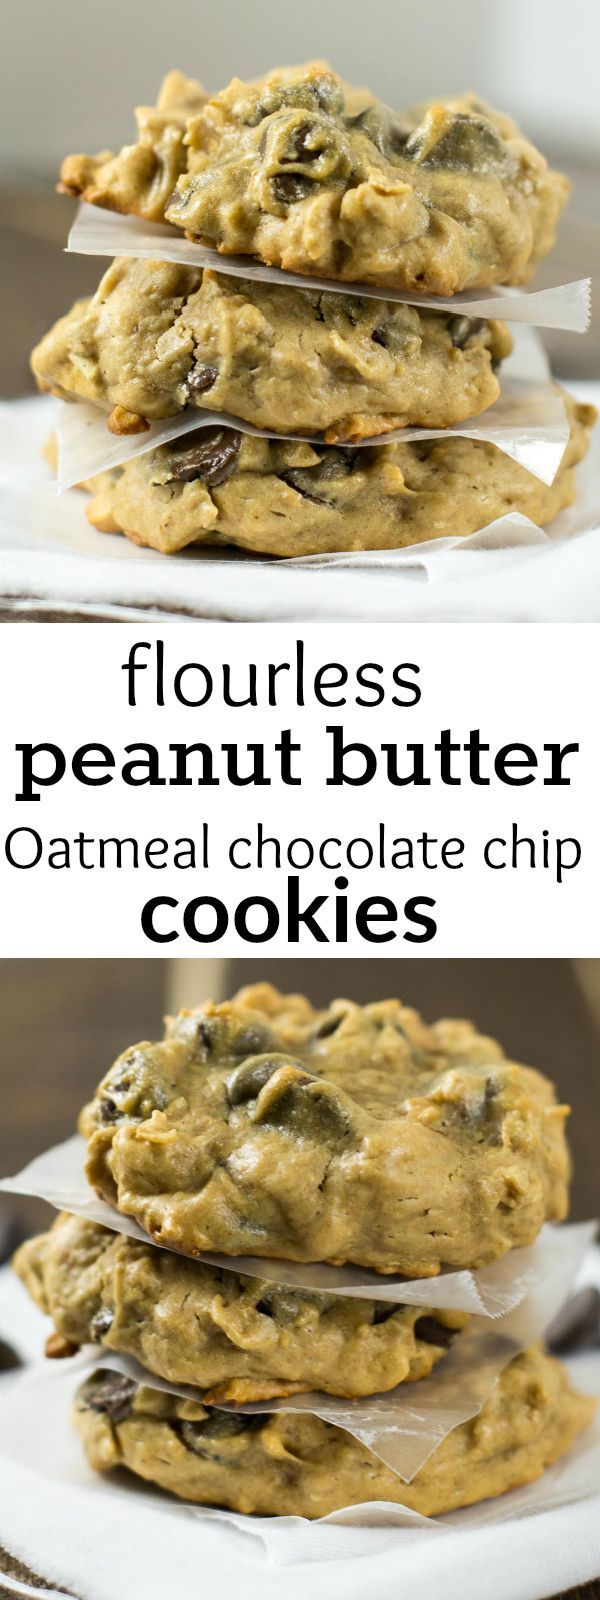 Best 25+ Oatmeal chocolate chip cookies ideas on Pinterest ...